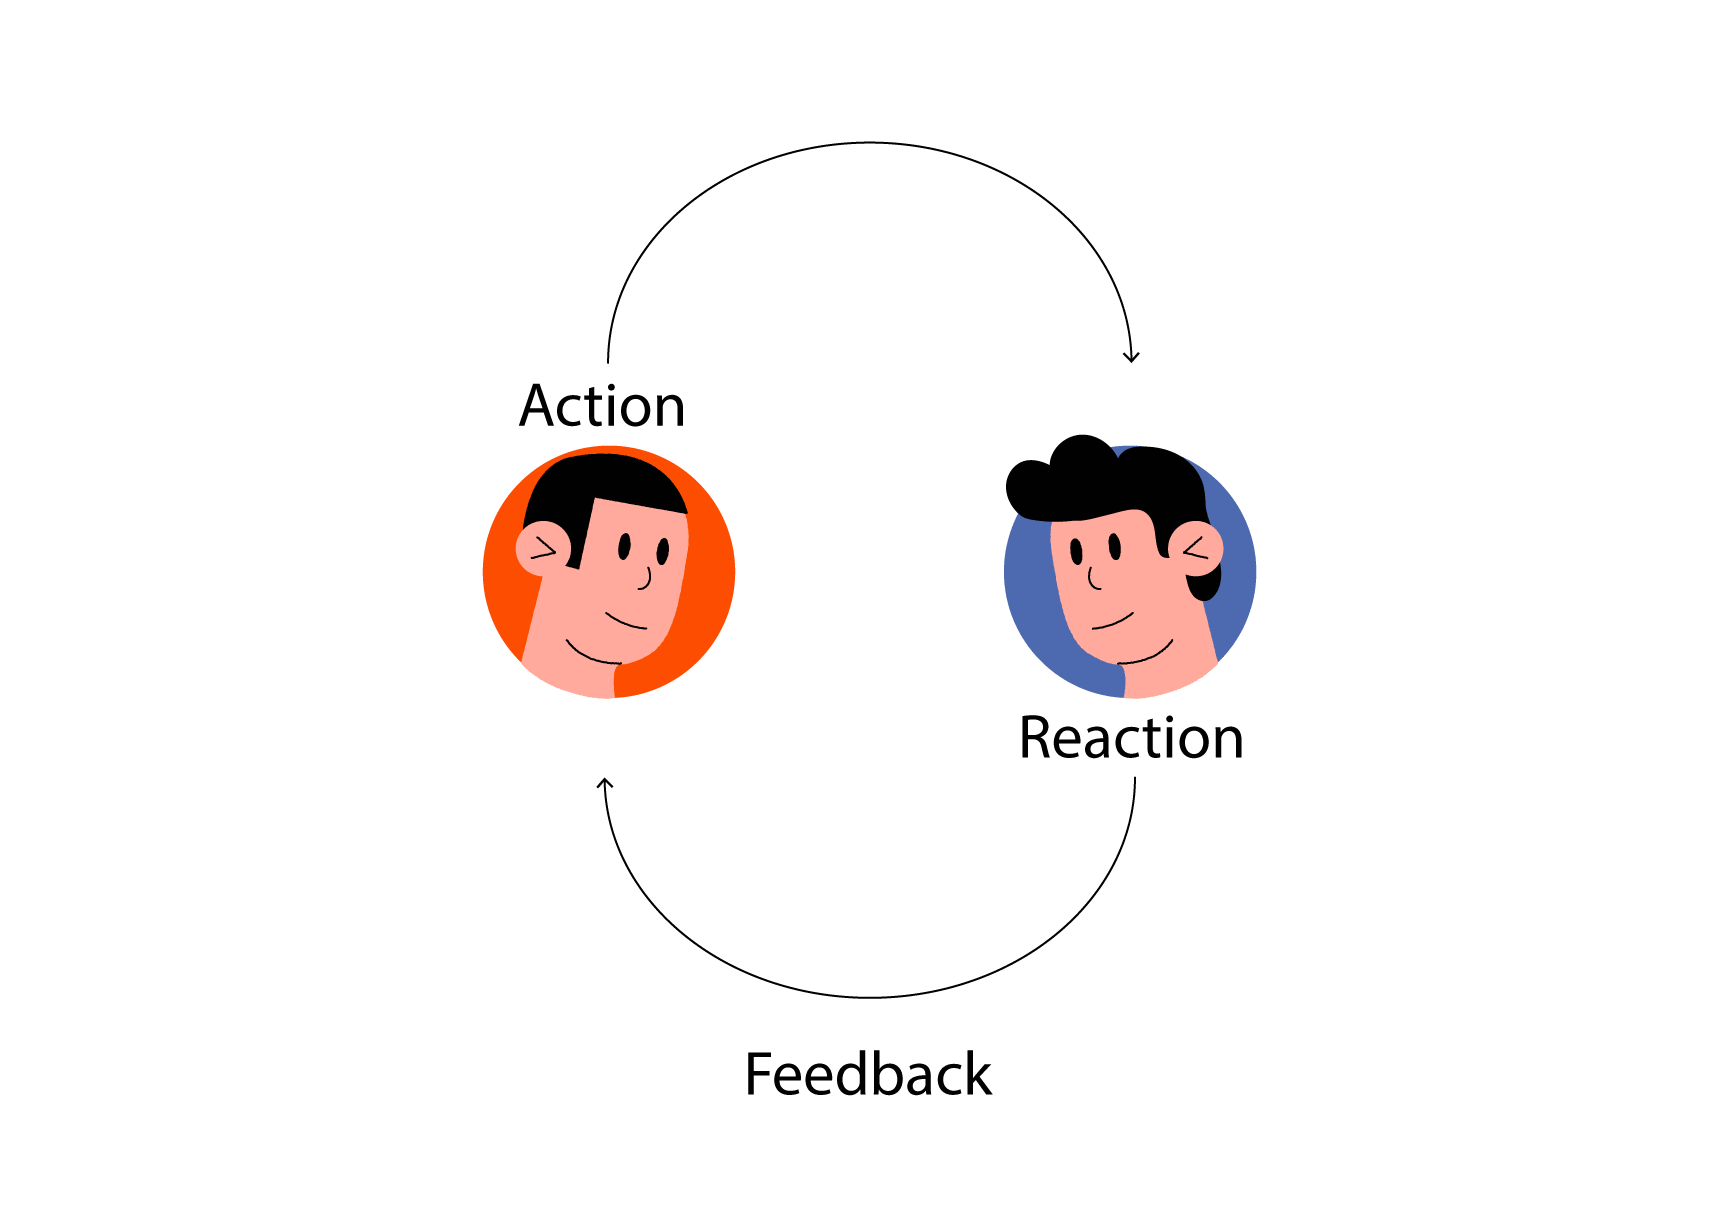 The Feedback Loop scheme